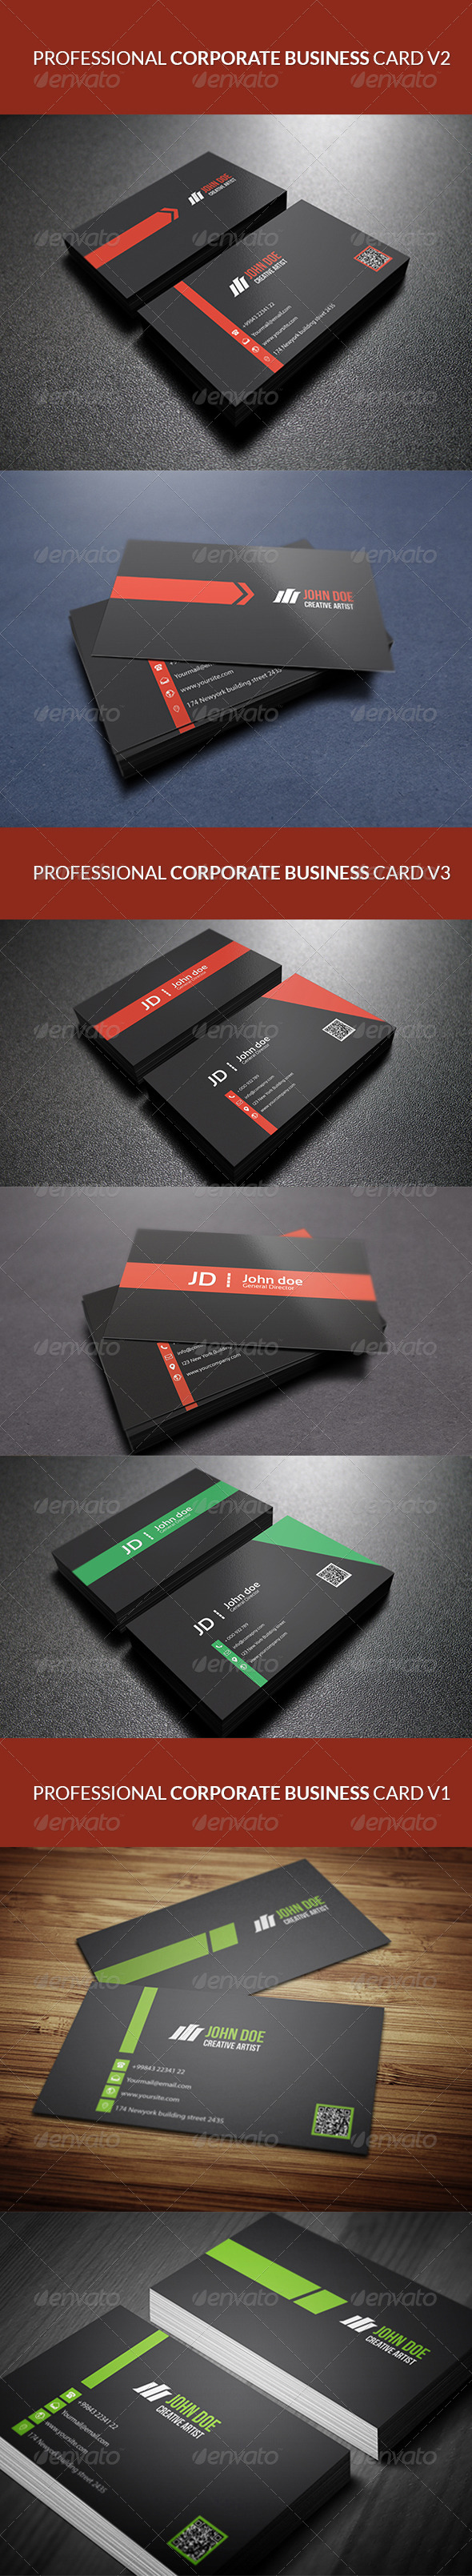 GraphicRiver Professional Corporate Business Card Bundle 1 7440191